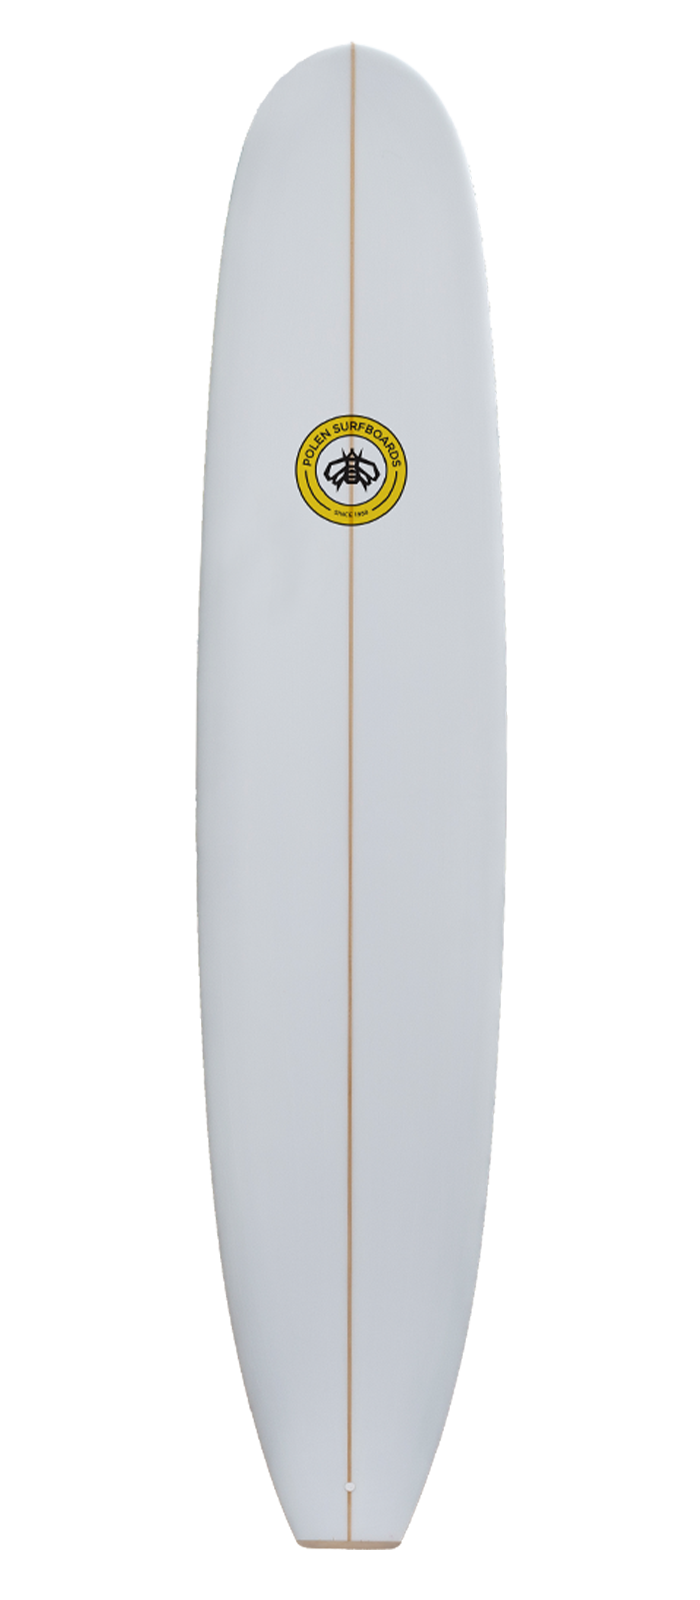 GRACE surfboard model bottom